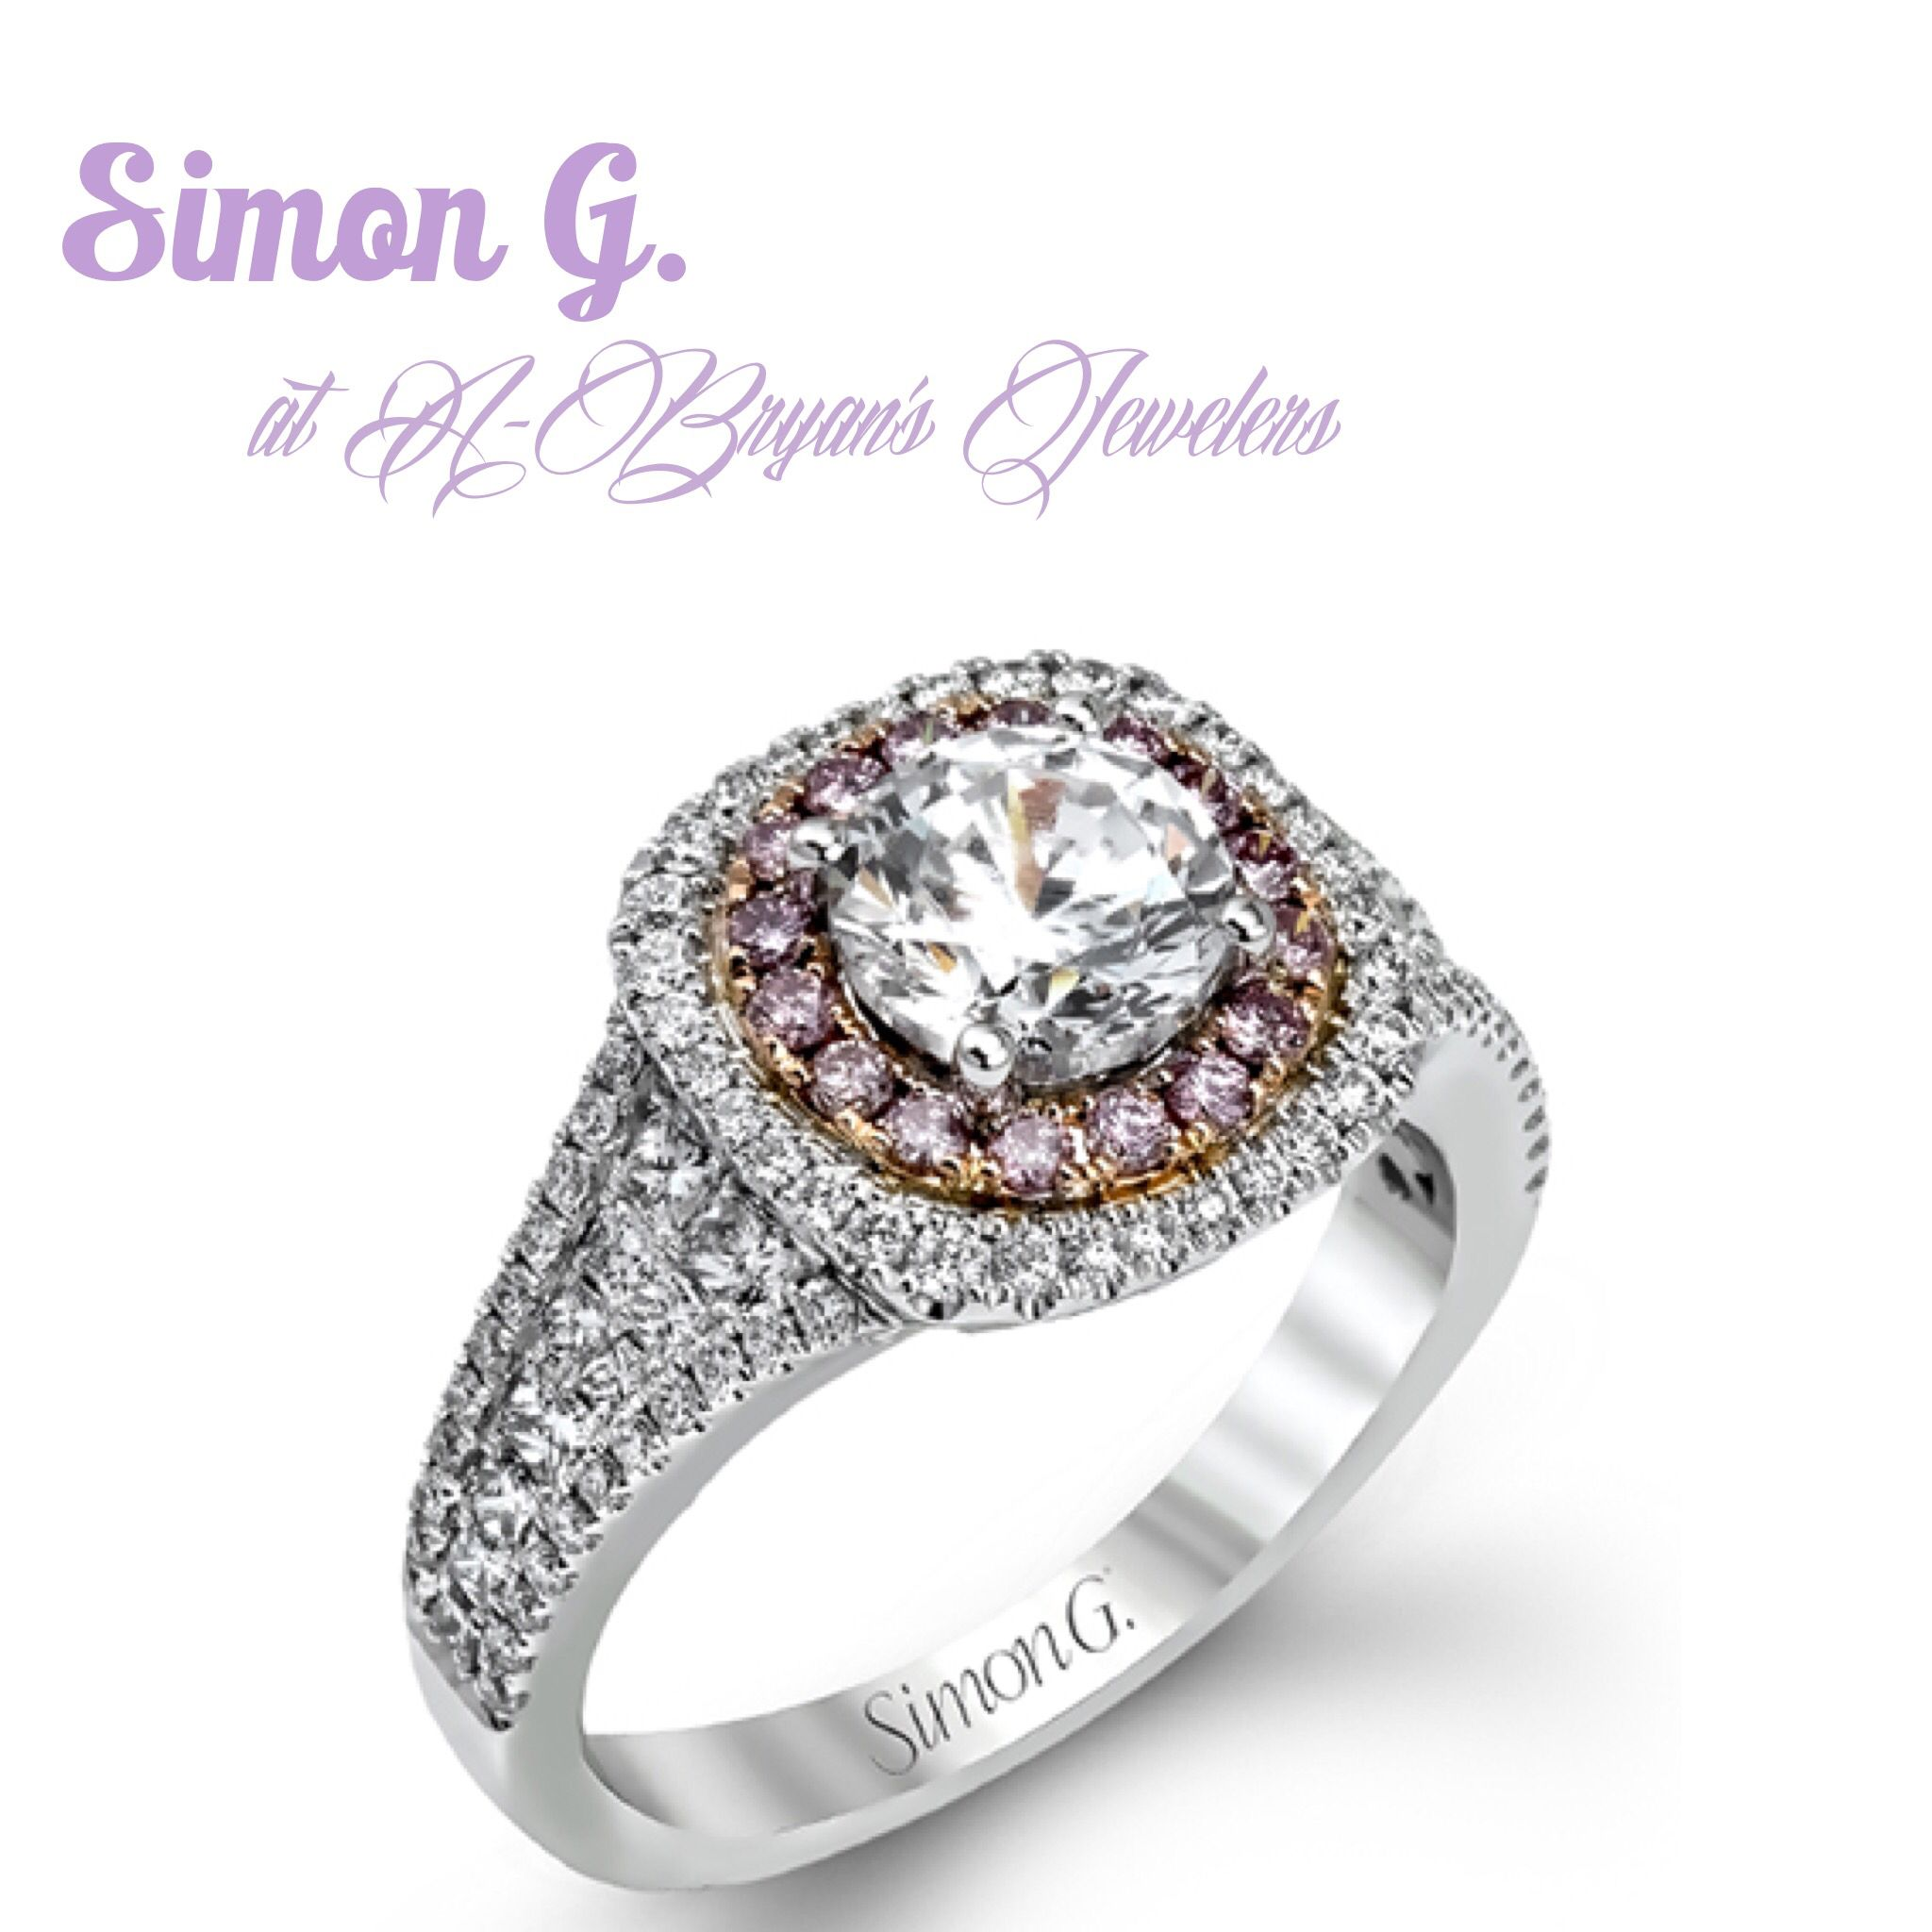 rings product jewels g by tashne enagement ladies engagement ring simon